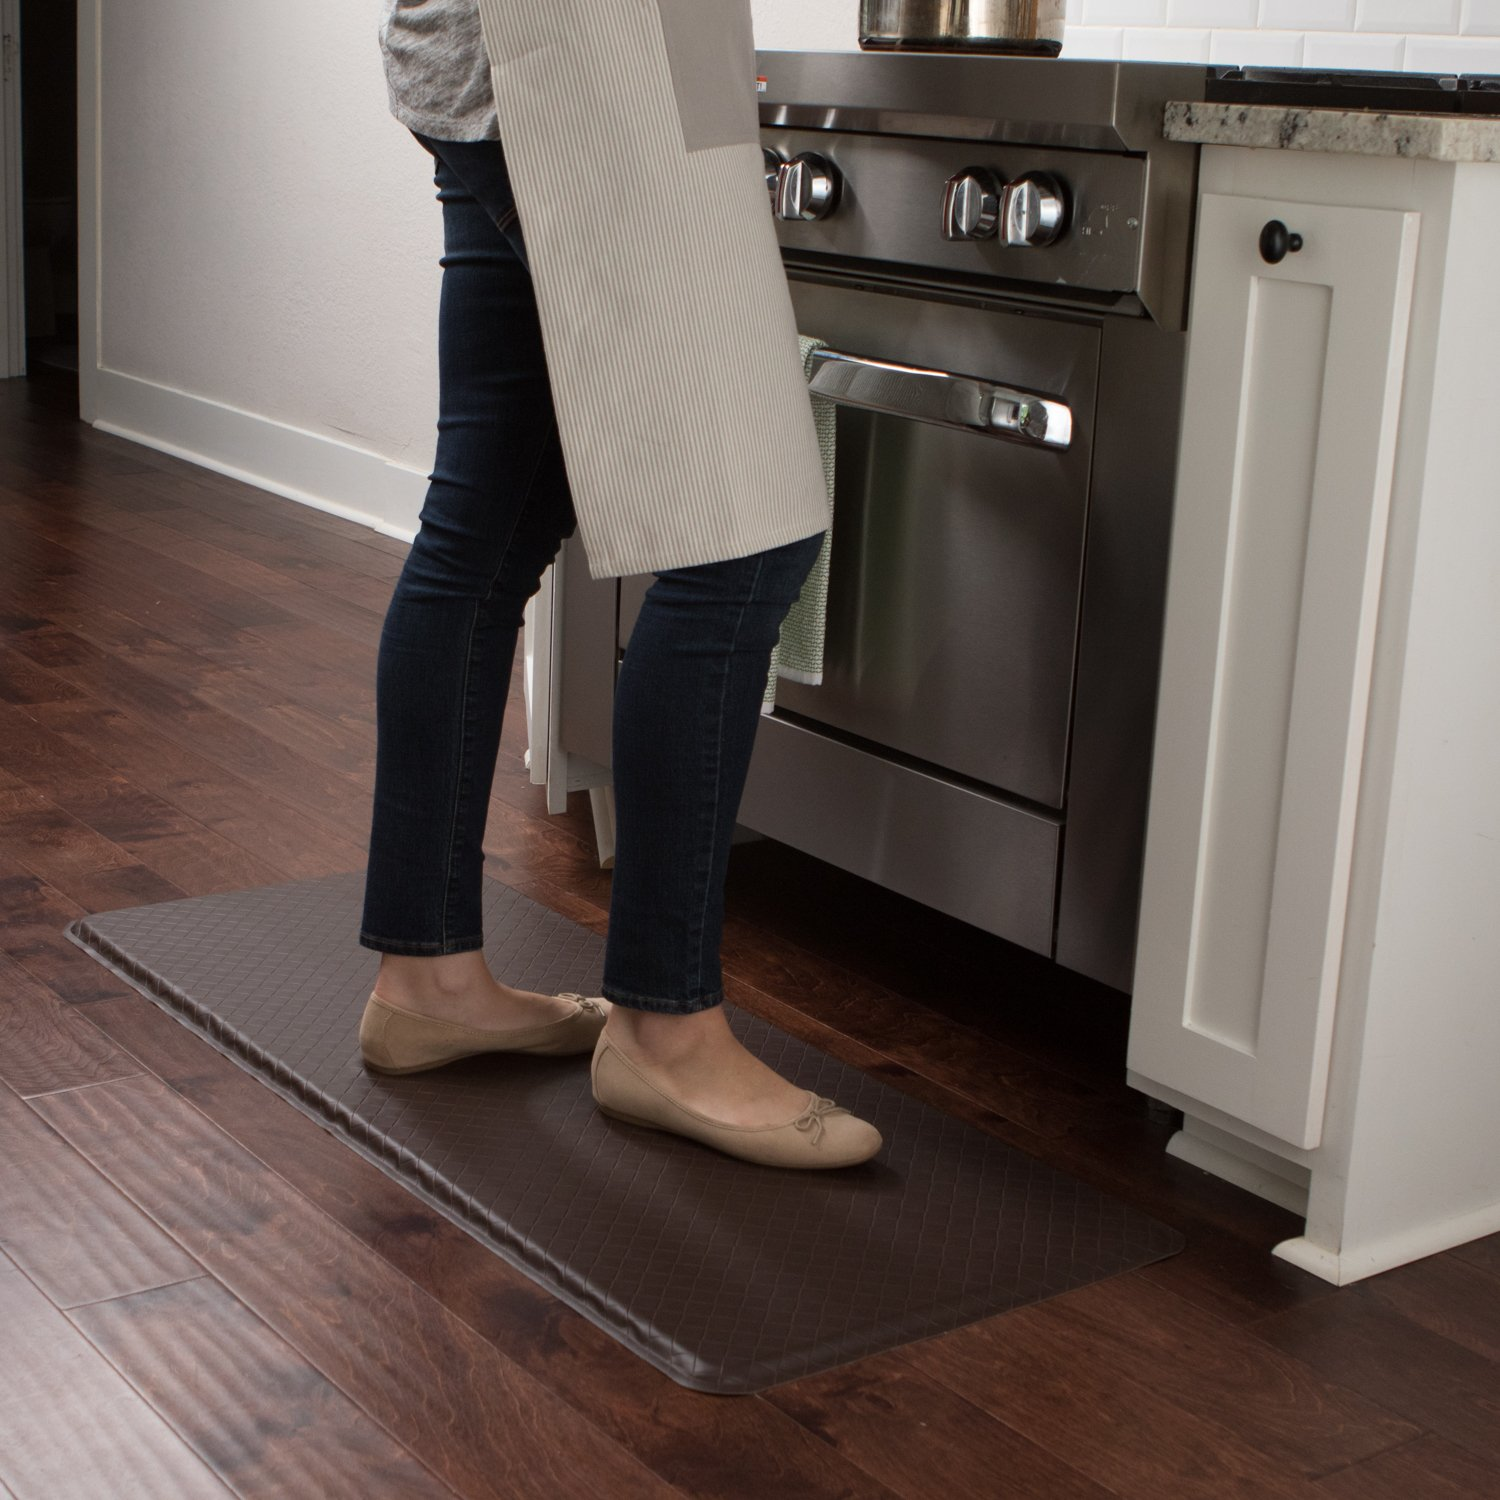 "GelPro Classic Anti-Fatigue Kitchen Comfort Chef Floor Mat, 20x48"", Linen Granite Gray Stain Resistant Surface with 1/2"" Gel Core for Health and Wellness by GelPro (Image #8)"